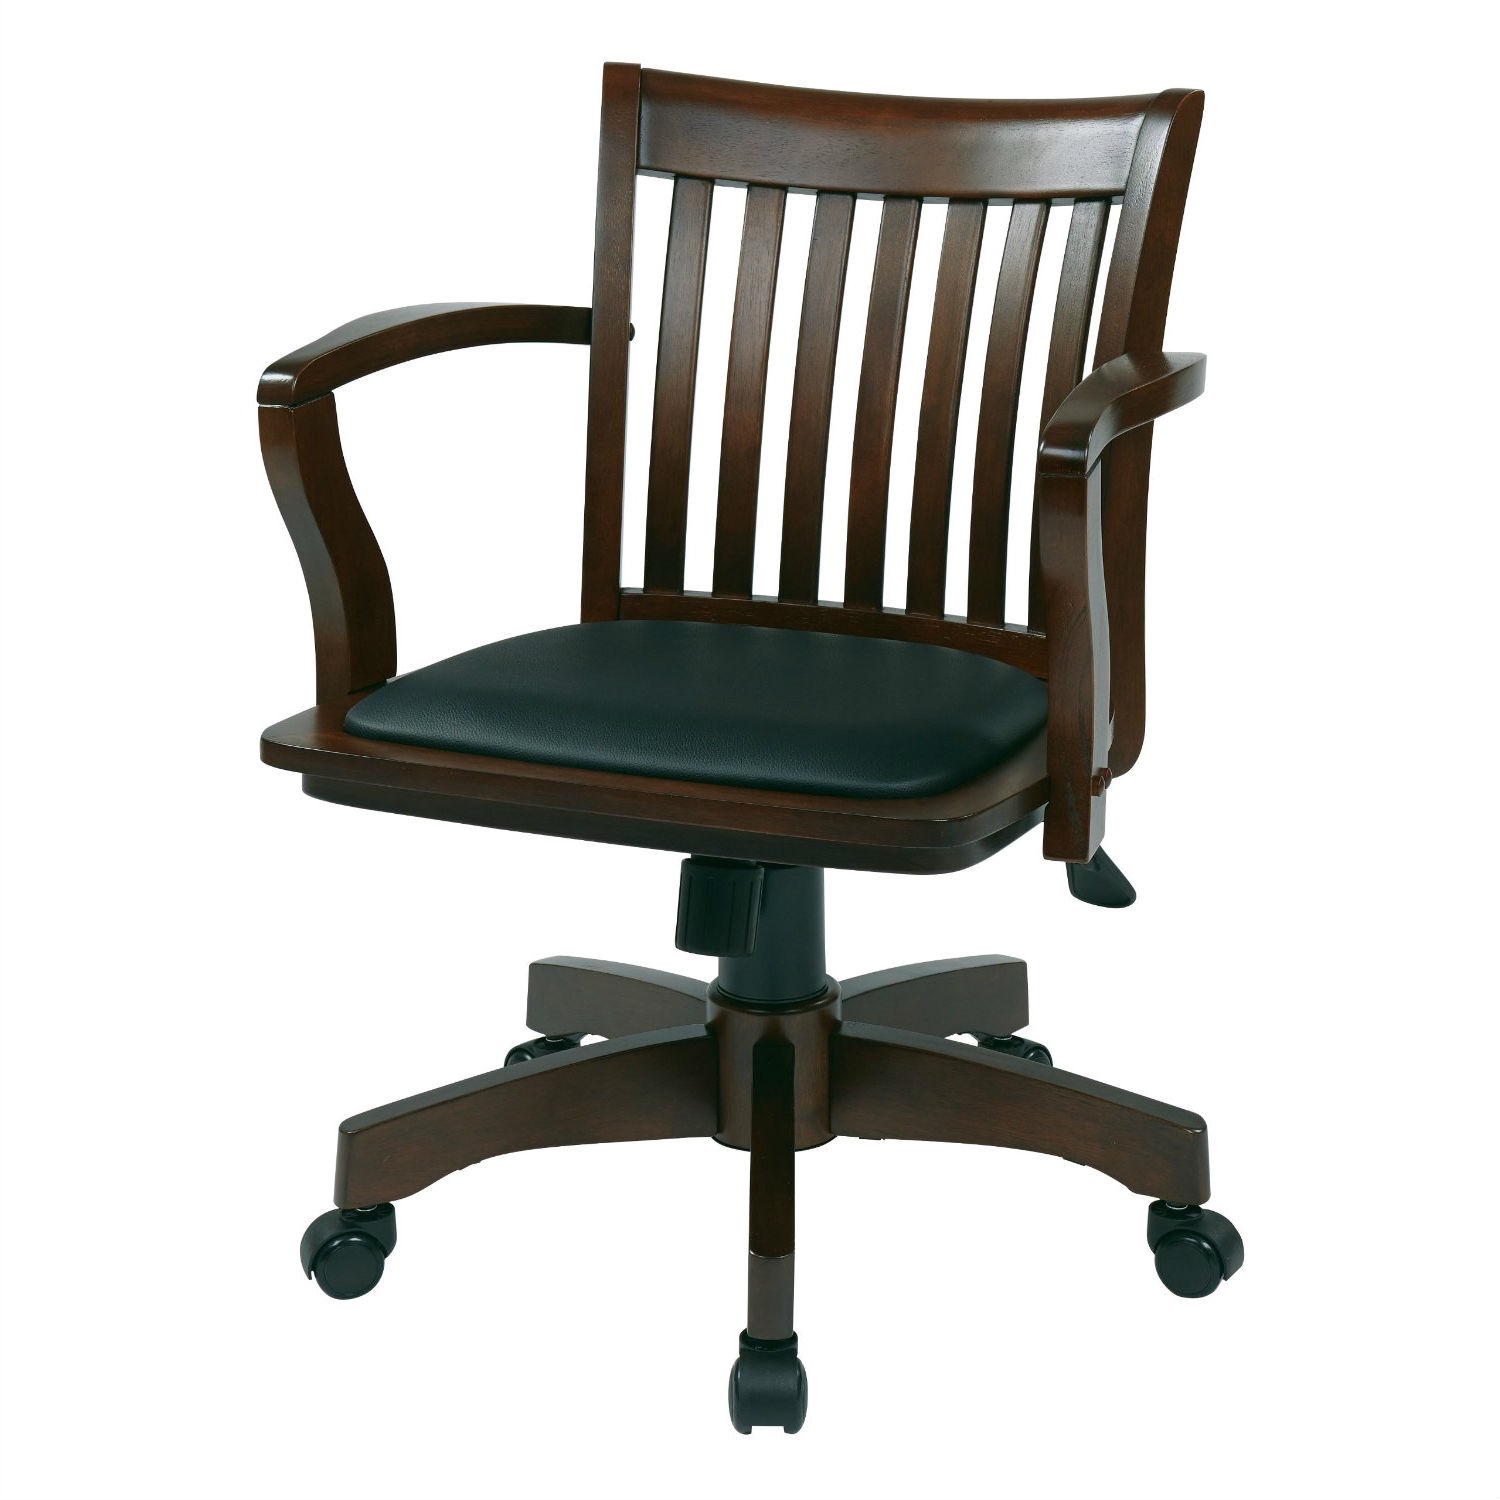 Marvelous Espresso Bankers Chair With Black Vinyl Padded Seat And Wood Arms